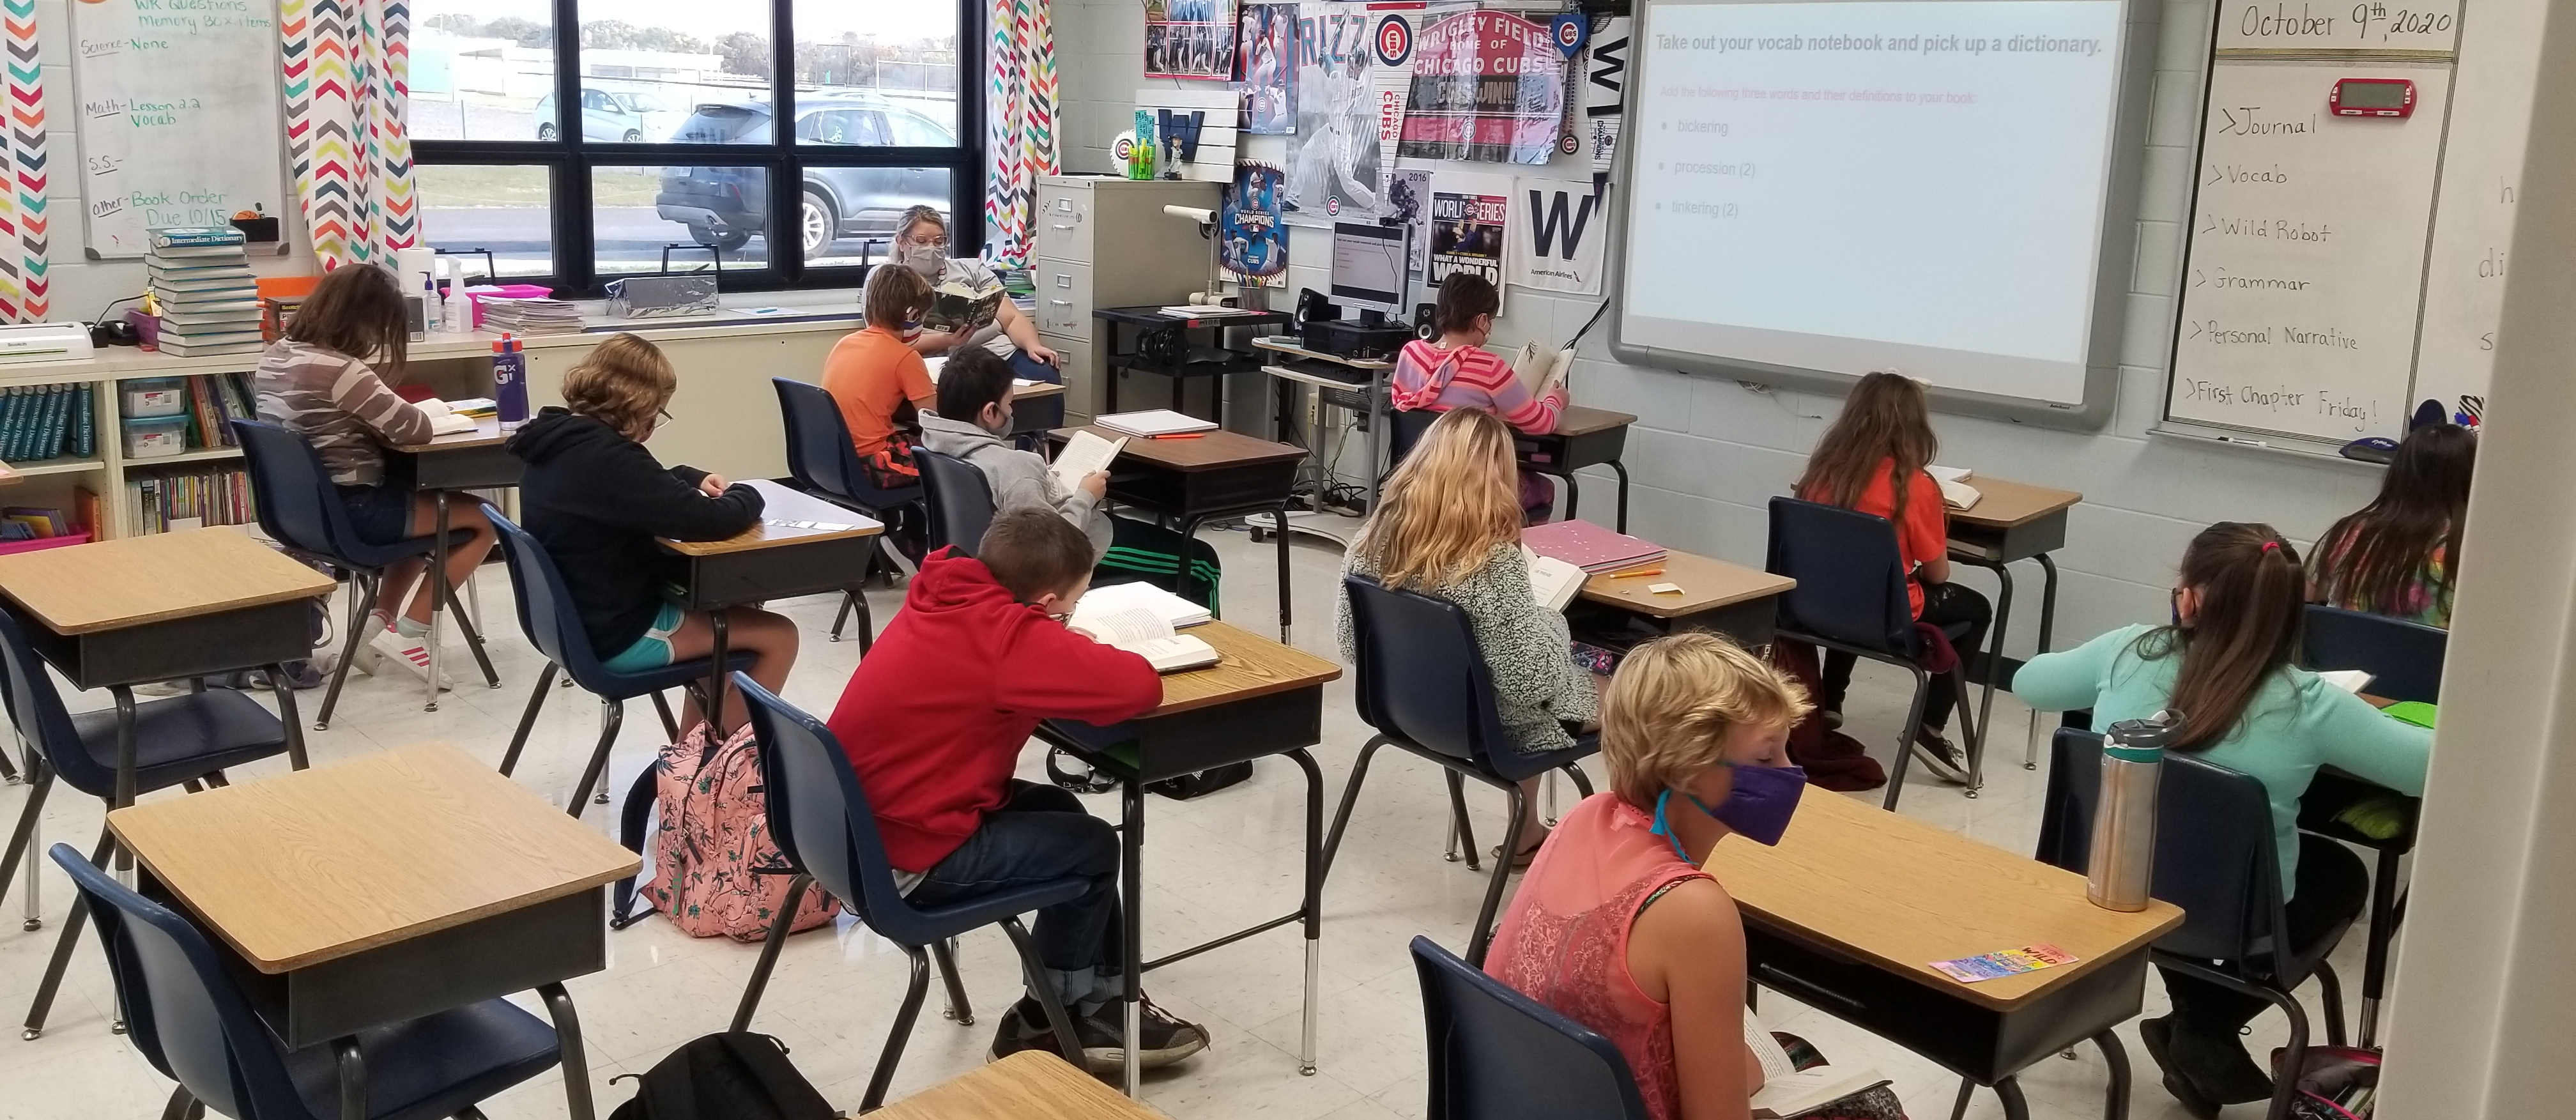 middle school students  learning in the classroom